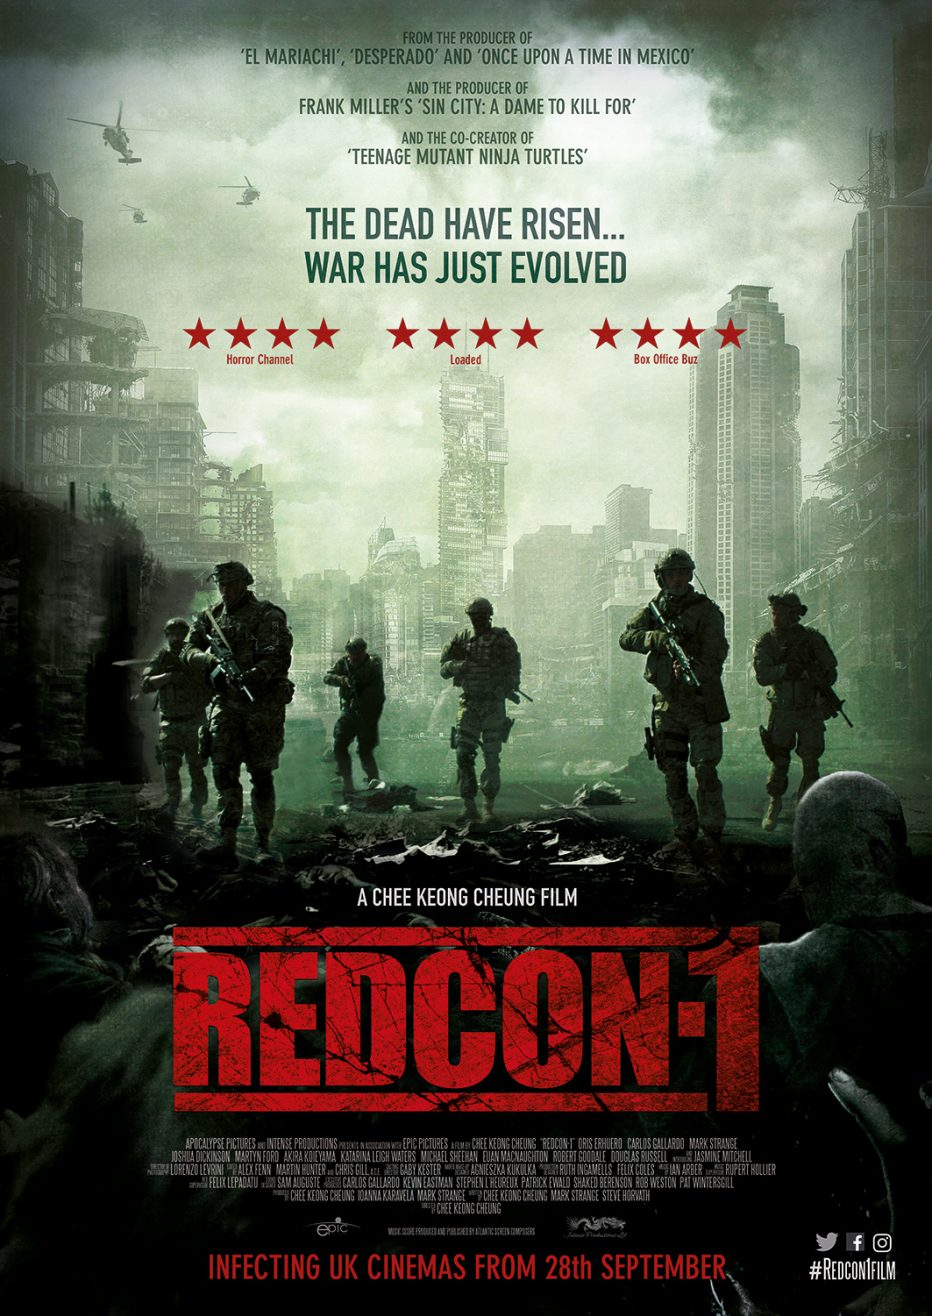 Official UK trailer & poster for the British zombie action epic Redcon-1 arriving in cinemas 28th September